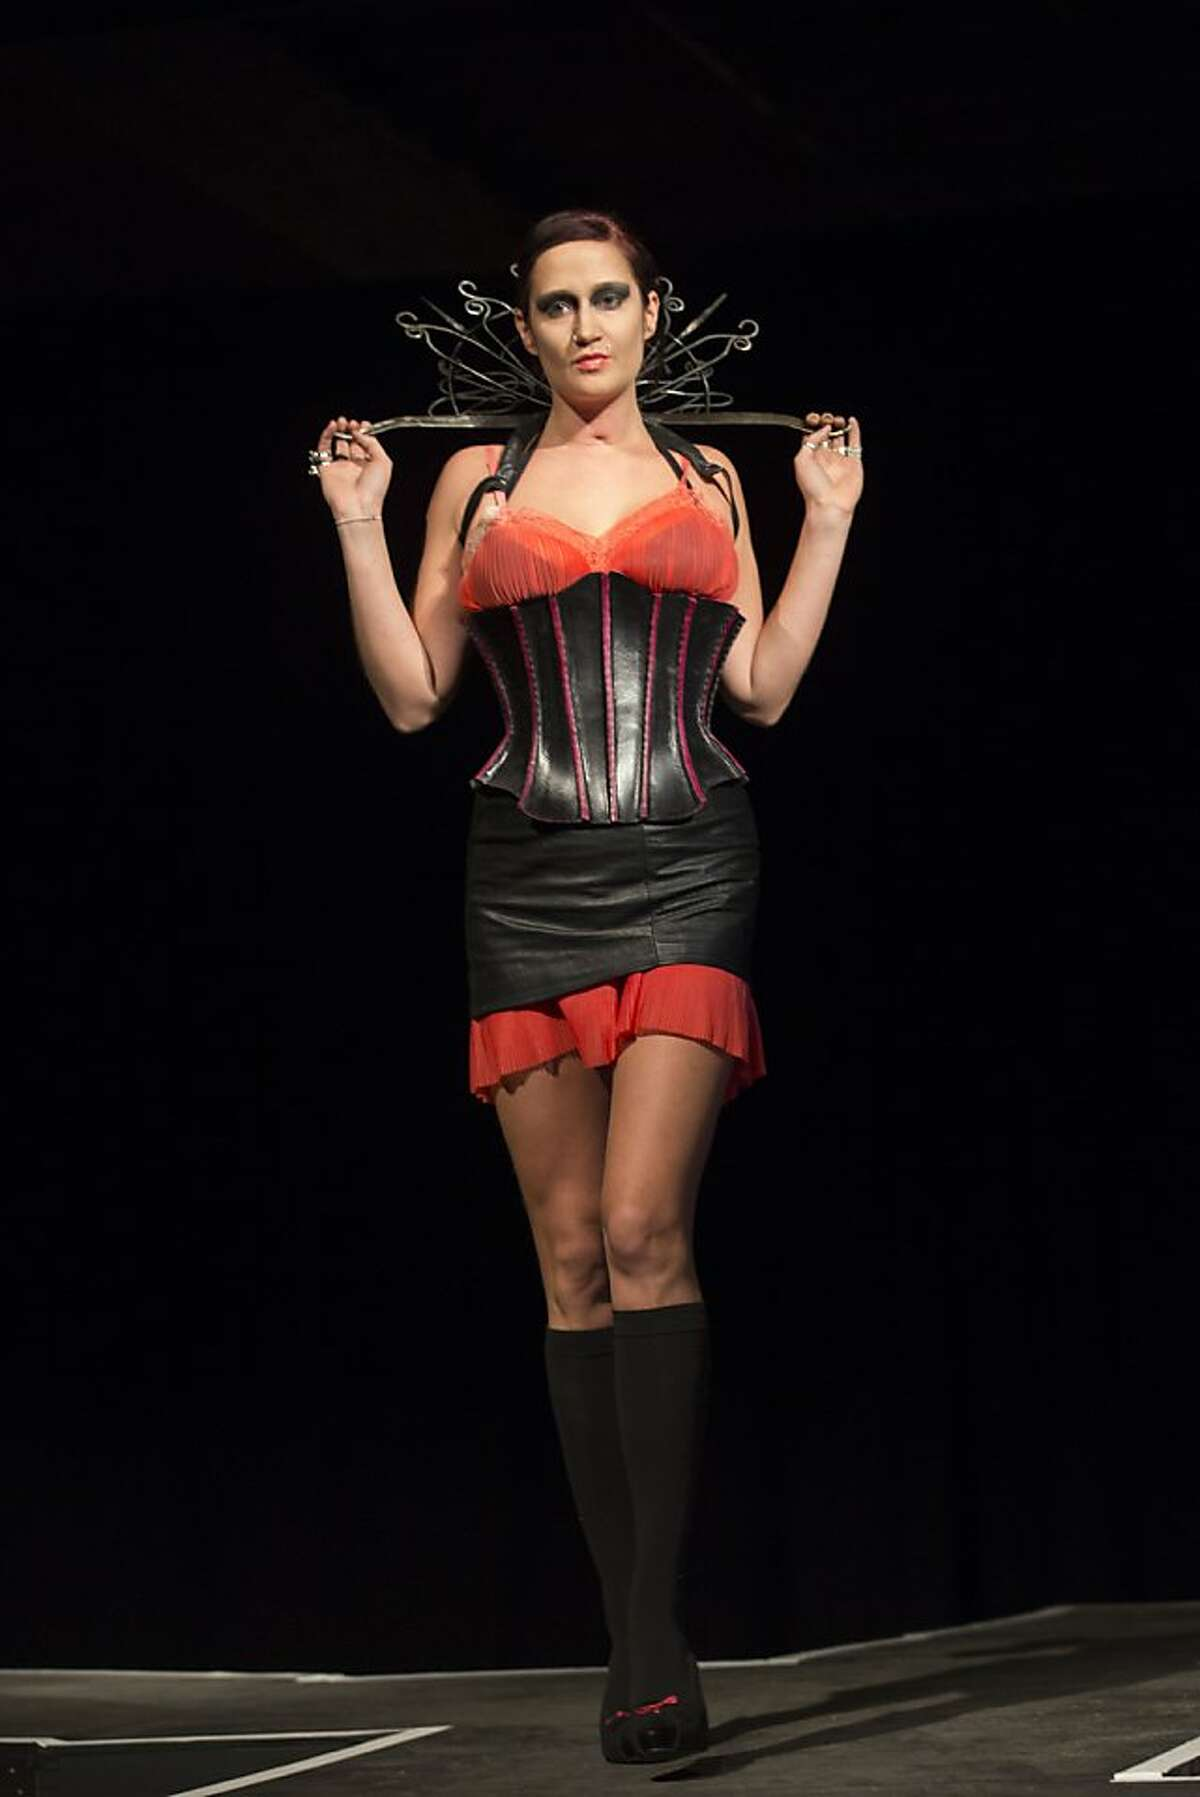 Model Heidi Robinson wears an outfit by designers Sam Waller (leather) and Celeste Flores (iron work) during Hot Couture fashion show media preview at The Crucible in Oakland, Calif. on Thursday, Jan. 10, 2013.